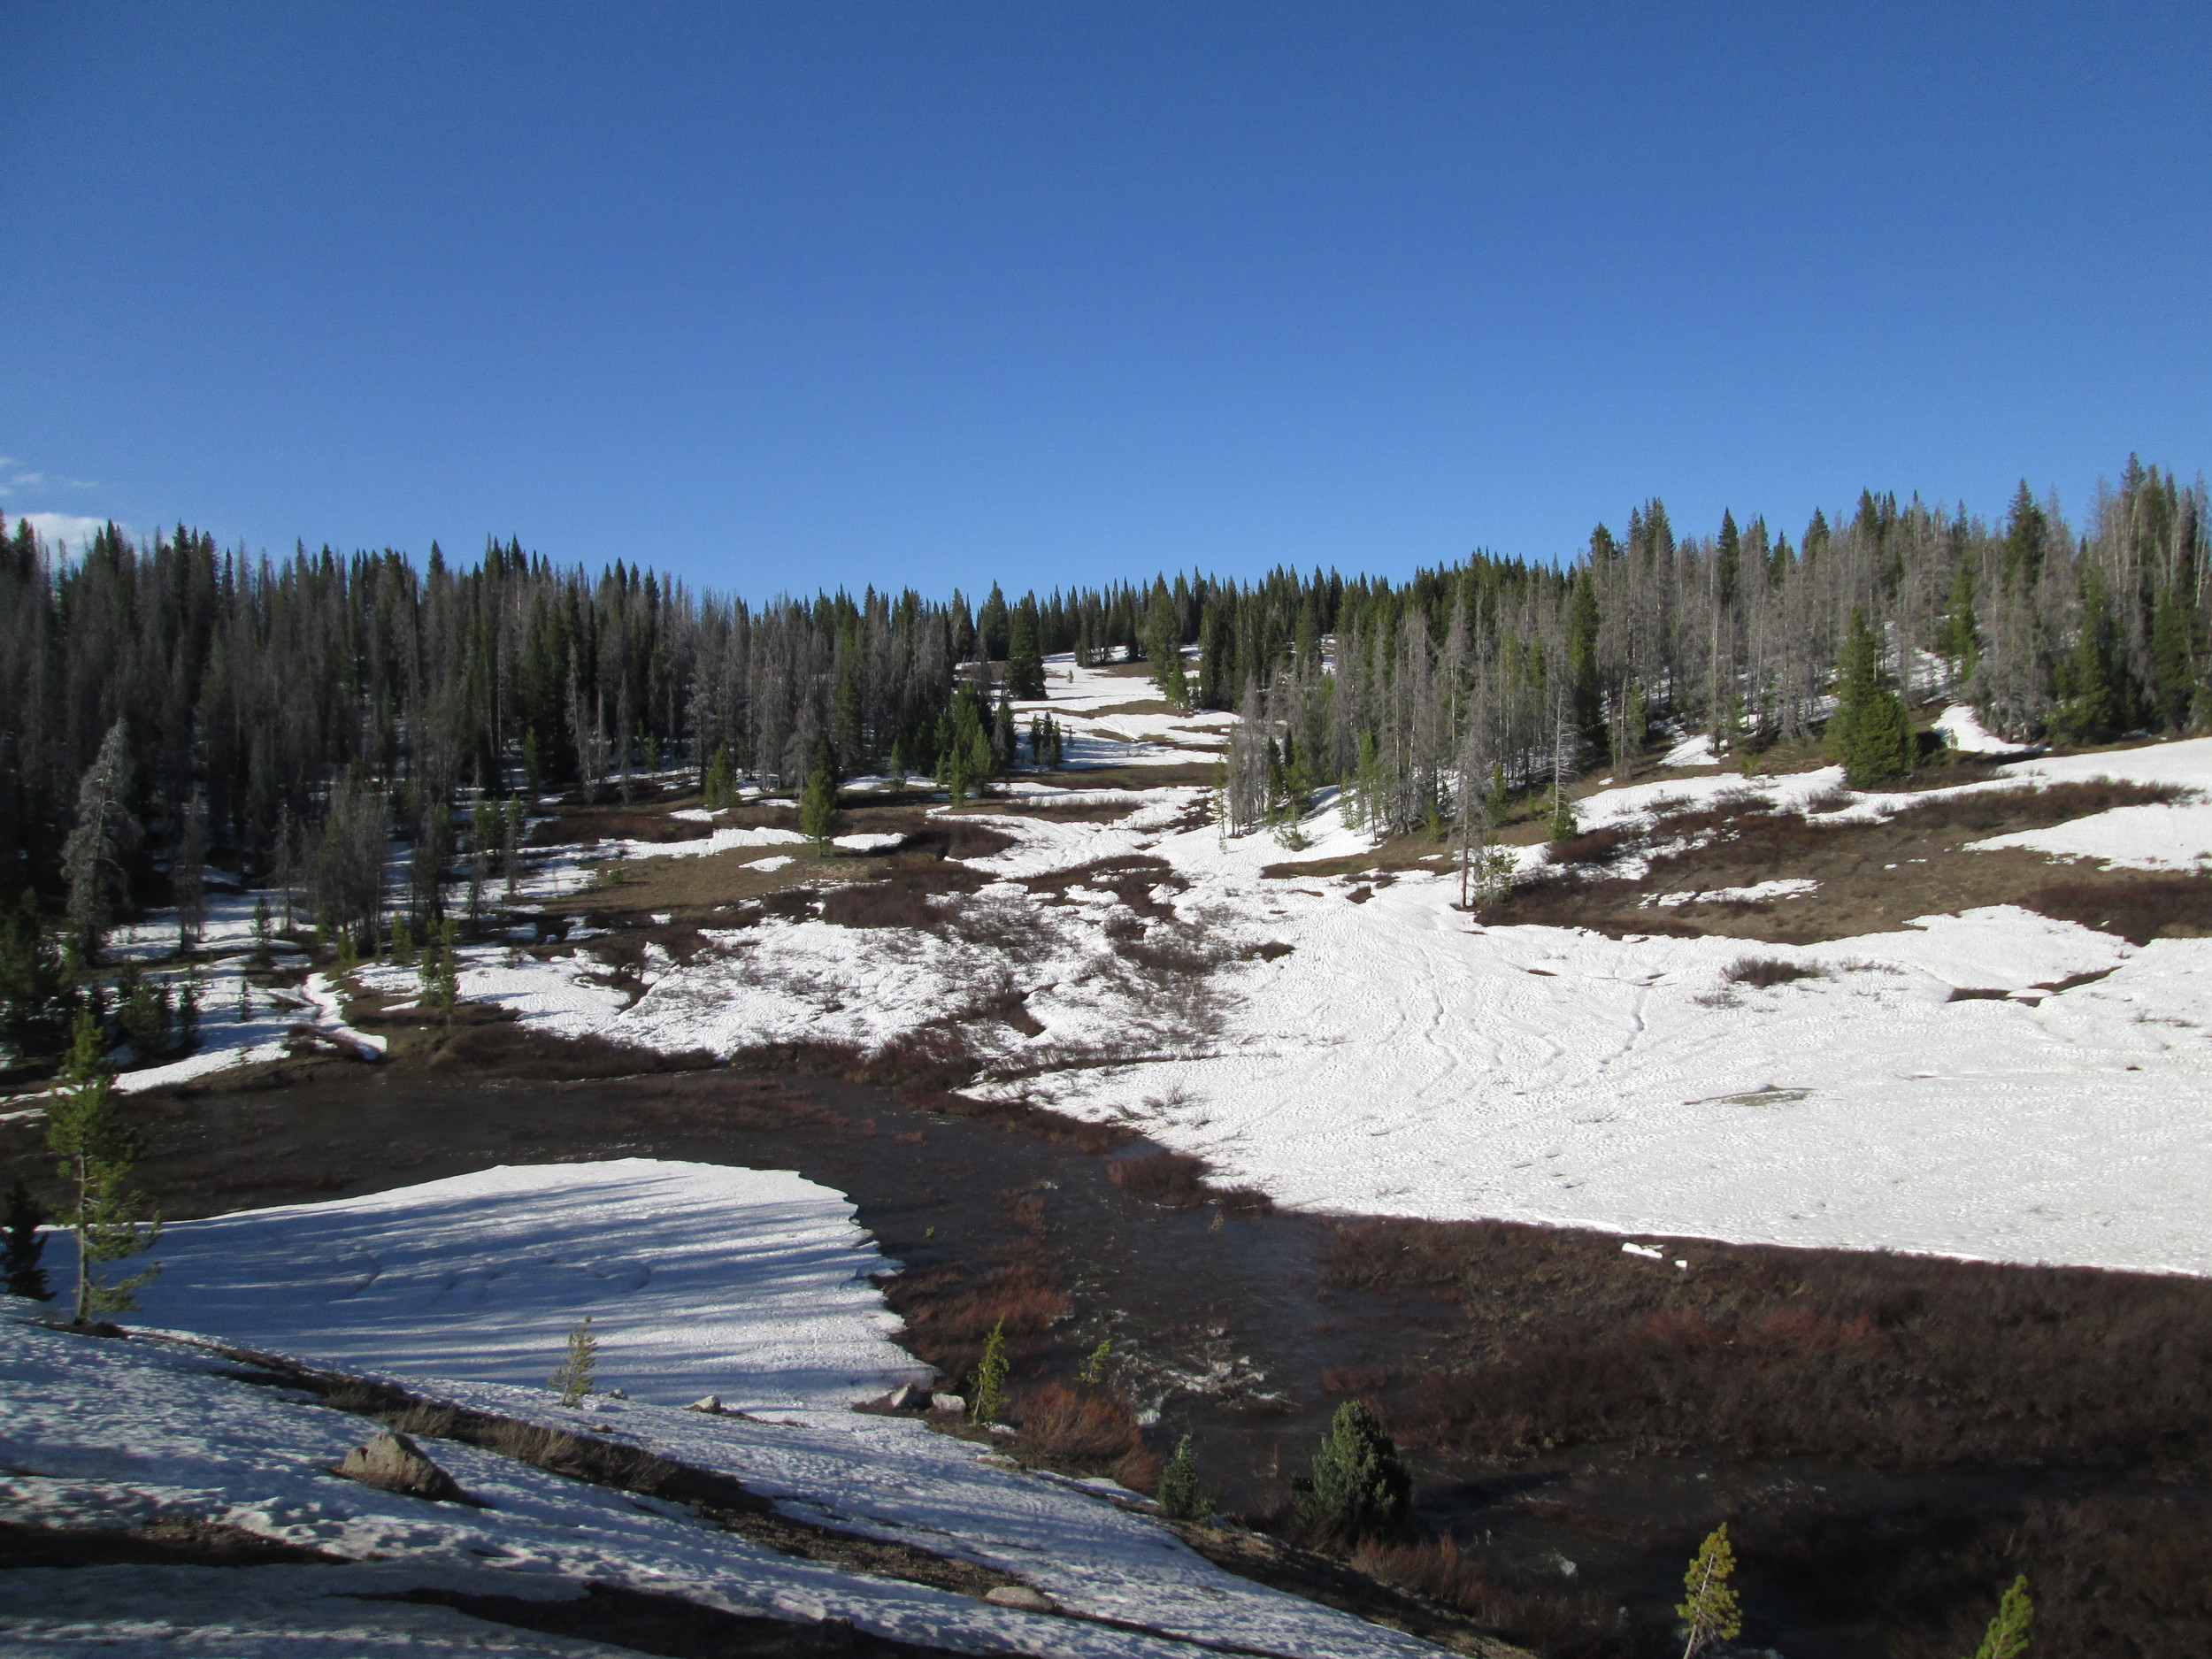 """The often-photographed (by CODOS) headwaters of Walton Creek displayed extensive loss of snowpack. Runnels are seen in the remaining snow, where very rapid snowmelt had produced downslope (versus vertical) """"preferred flow channels"""" for melt water, similar to eroded gullies. Suncupping is also apparent, as pockmarks in the snow surface caused by depressions above vertically oriented """"preferred flow paths"""" for melt water. Dust and reduced snow albedo enhanced both processes in this sunny, southwest-facing terrain."""